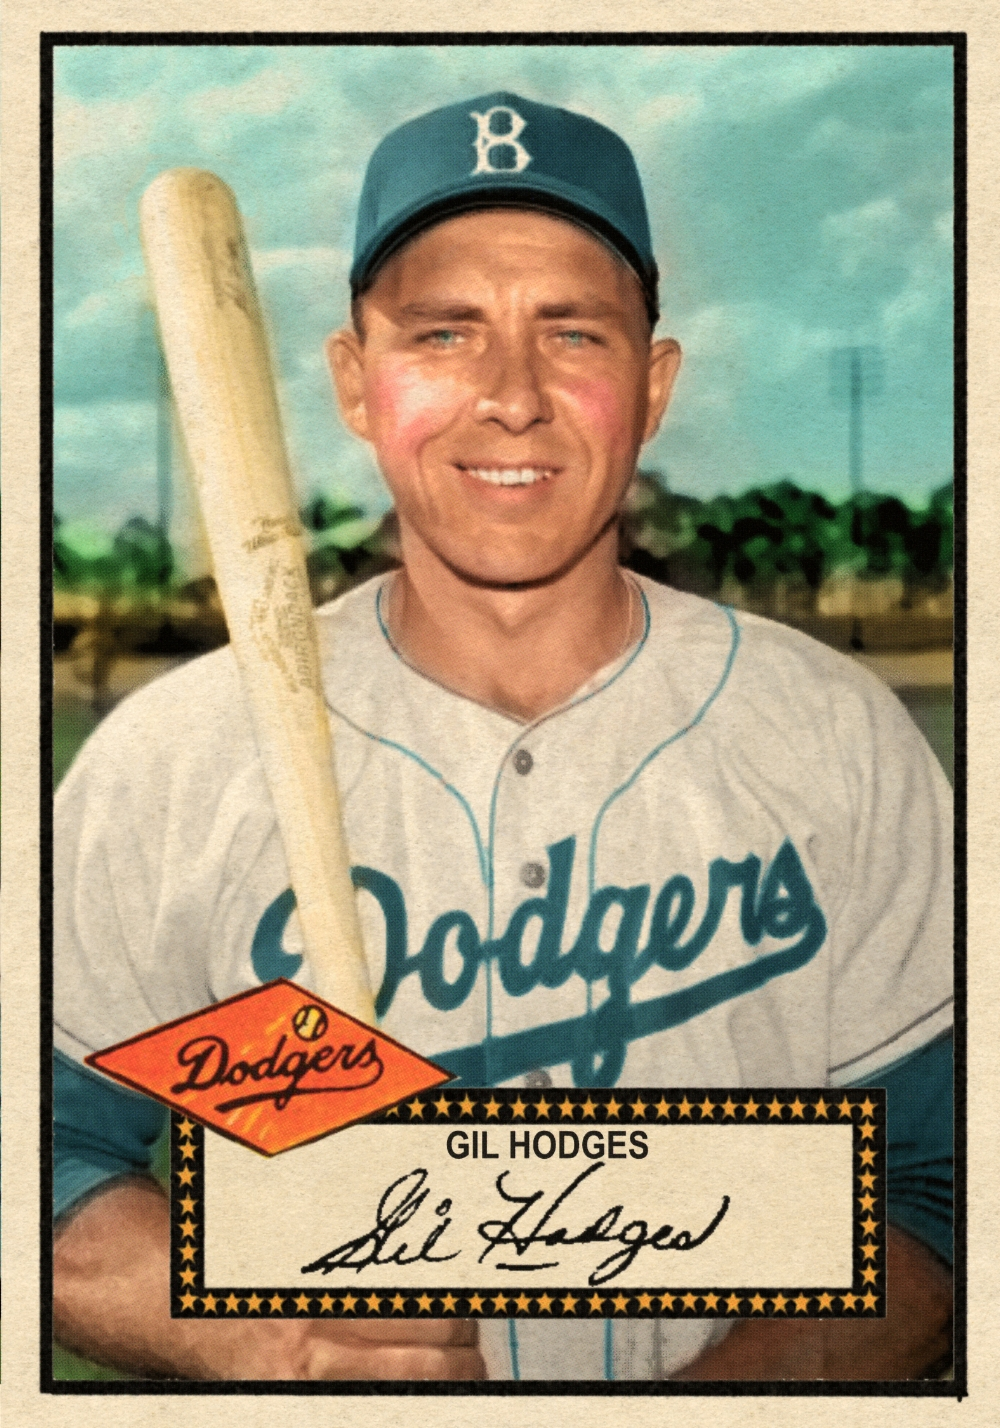 1952 BANTY RED BASEBALL STARS SERIES #7 GIL HODGES - 04/10/17 Auction Closes at 156.35 USD - Current Population of 4